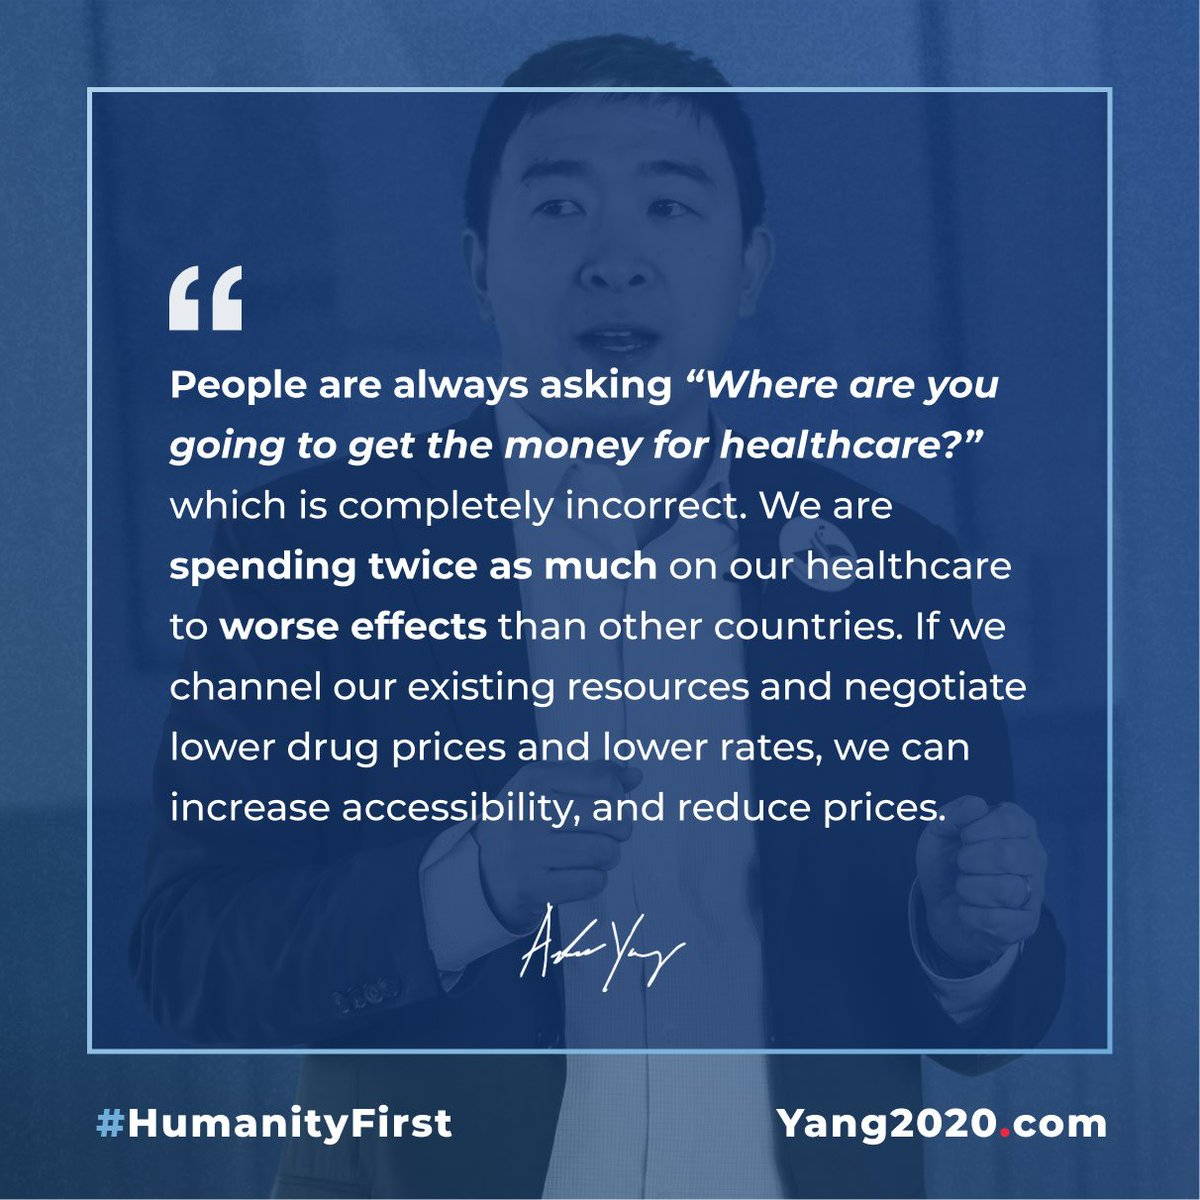 We spend twice as much on our healthcare as other countries to worse results.  Medicare for All will get a massive burden off of both families and businesses and largely pay for itself through lower rates and expenses.